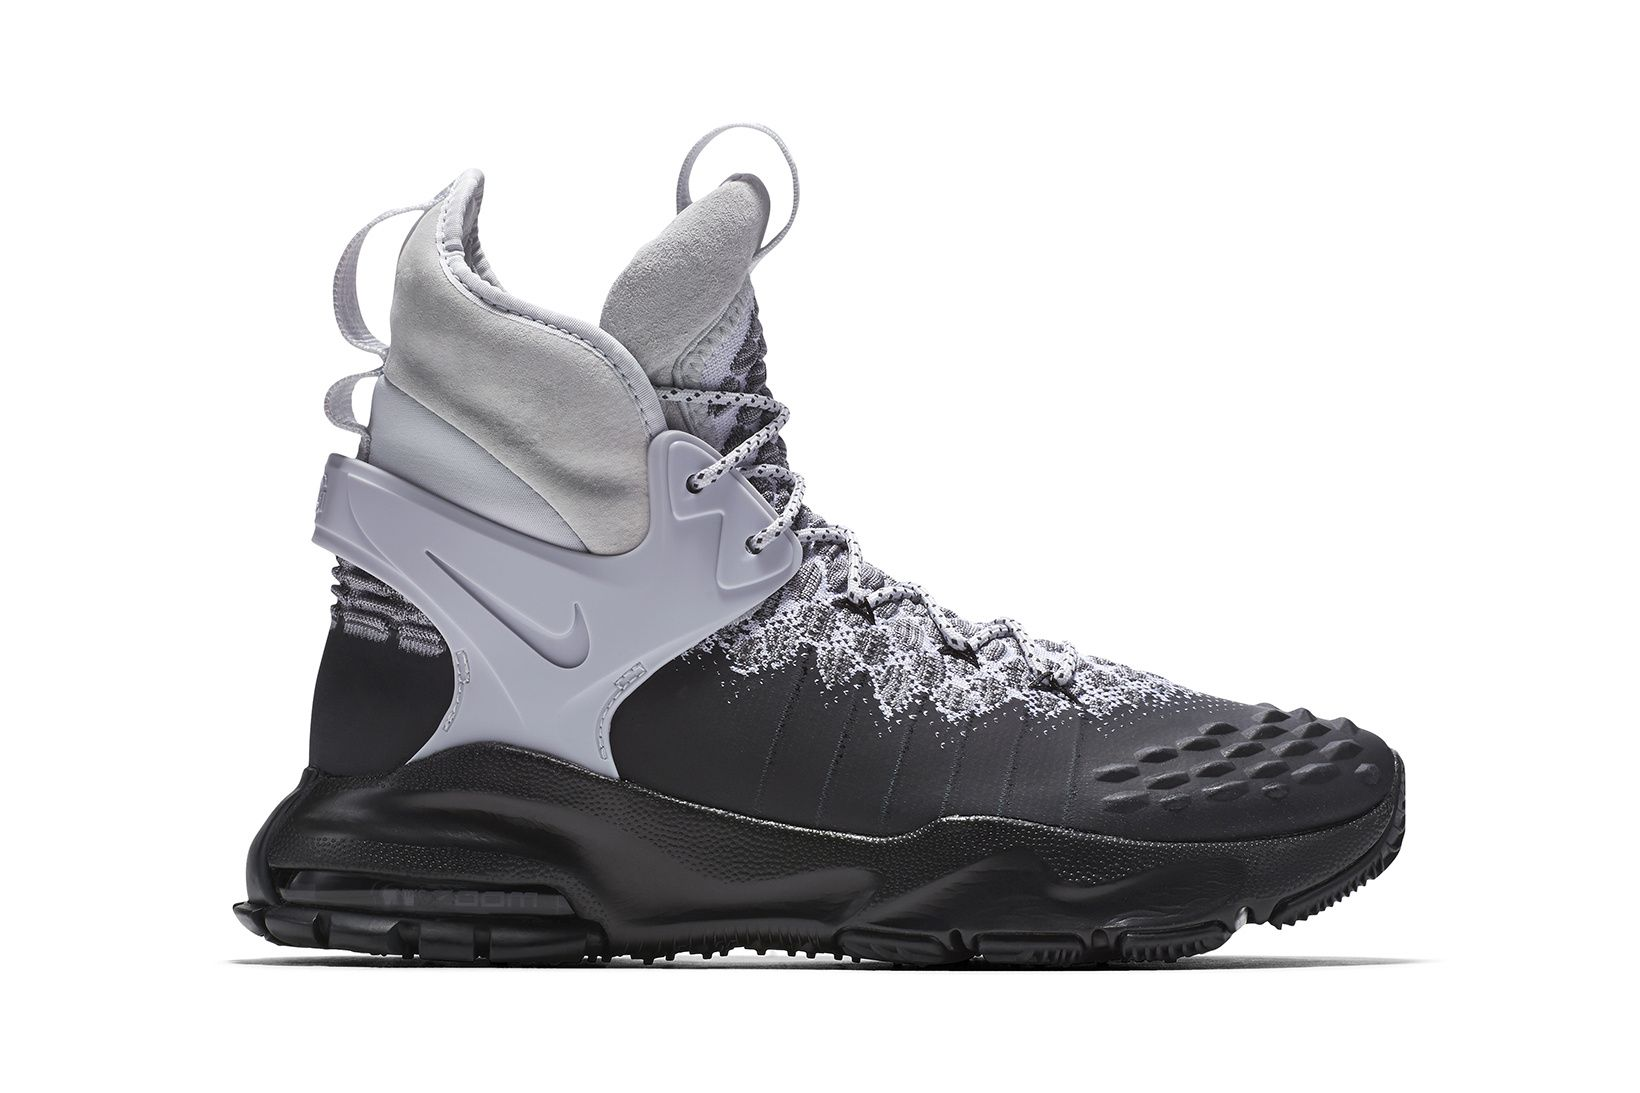 NikeLab Nike Zoom Tallac Flyknit ACG Boot Black Grey Men's Shoes black